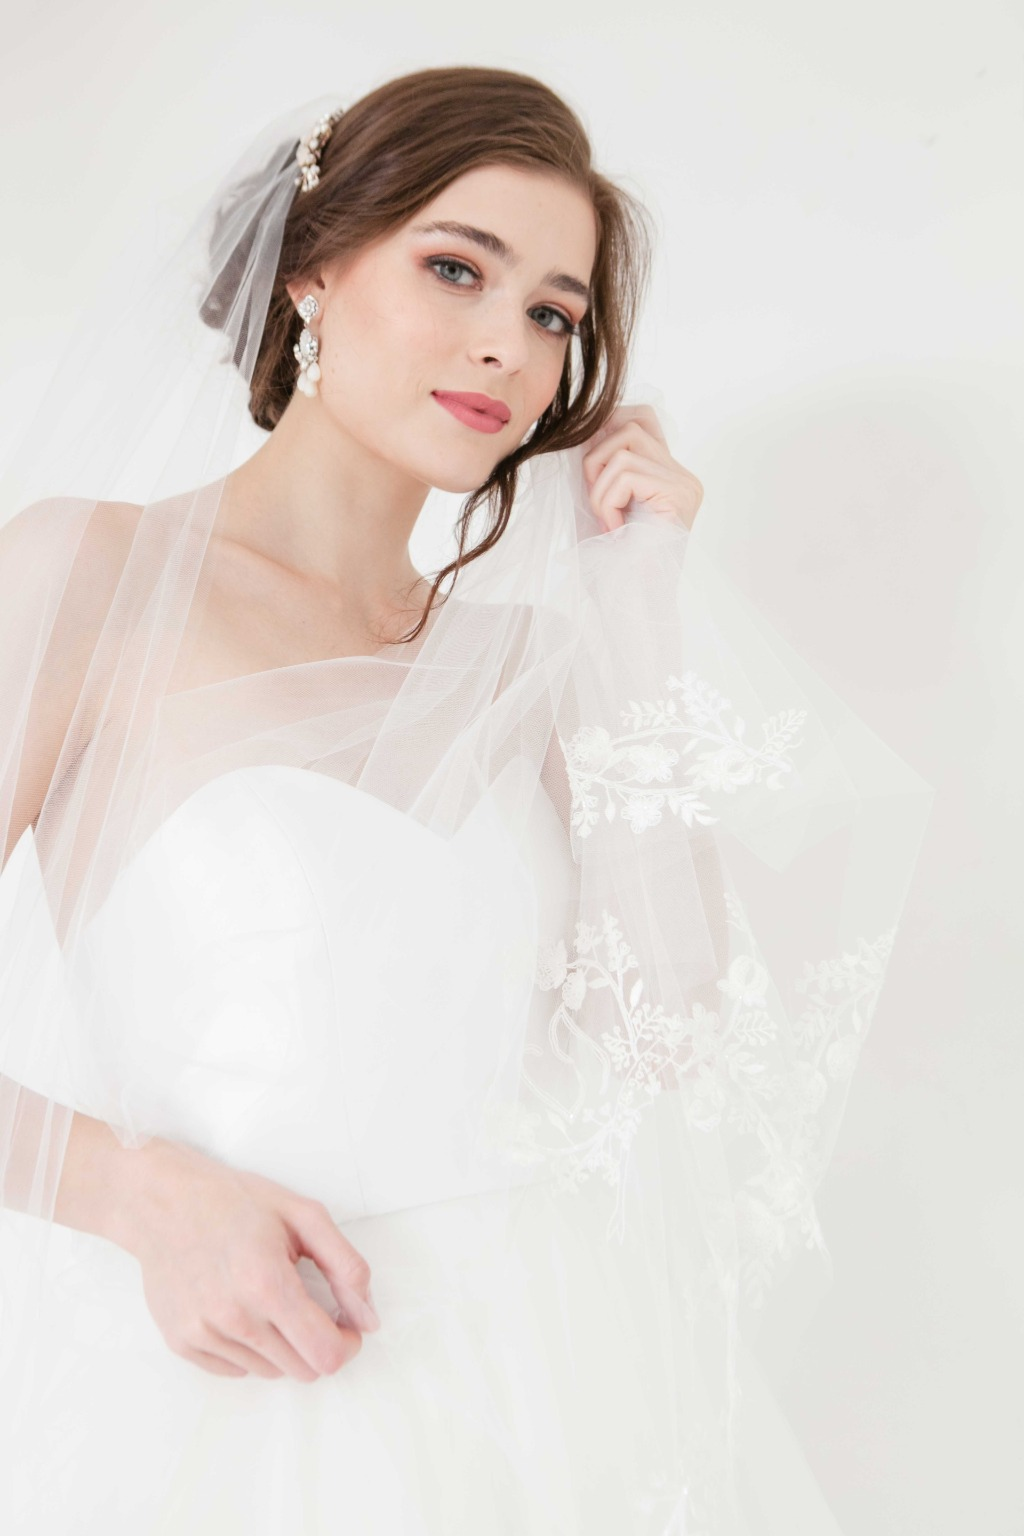 Wedding inspiration from Laura Jayne's 2020 collection!